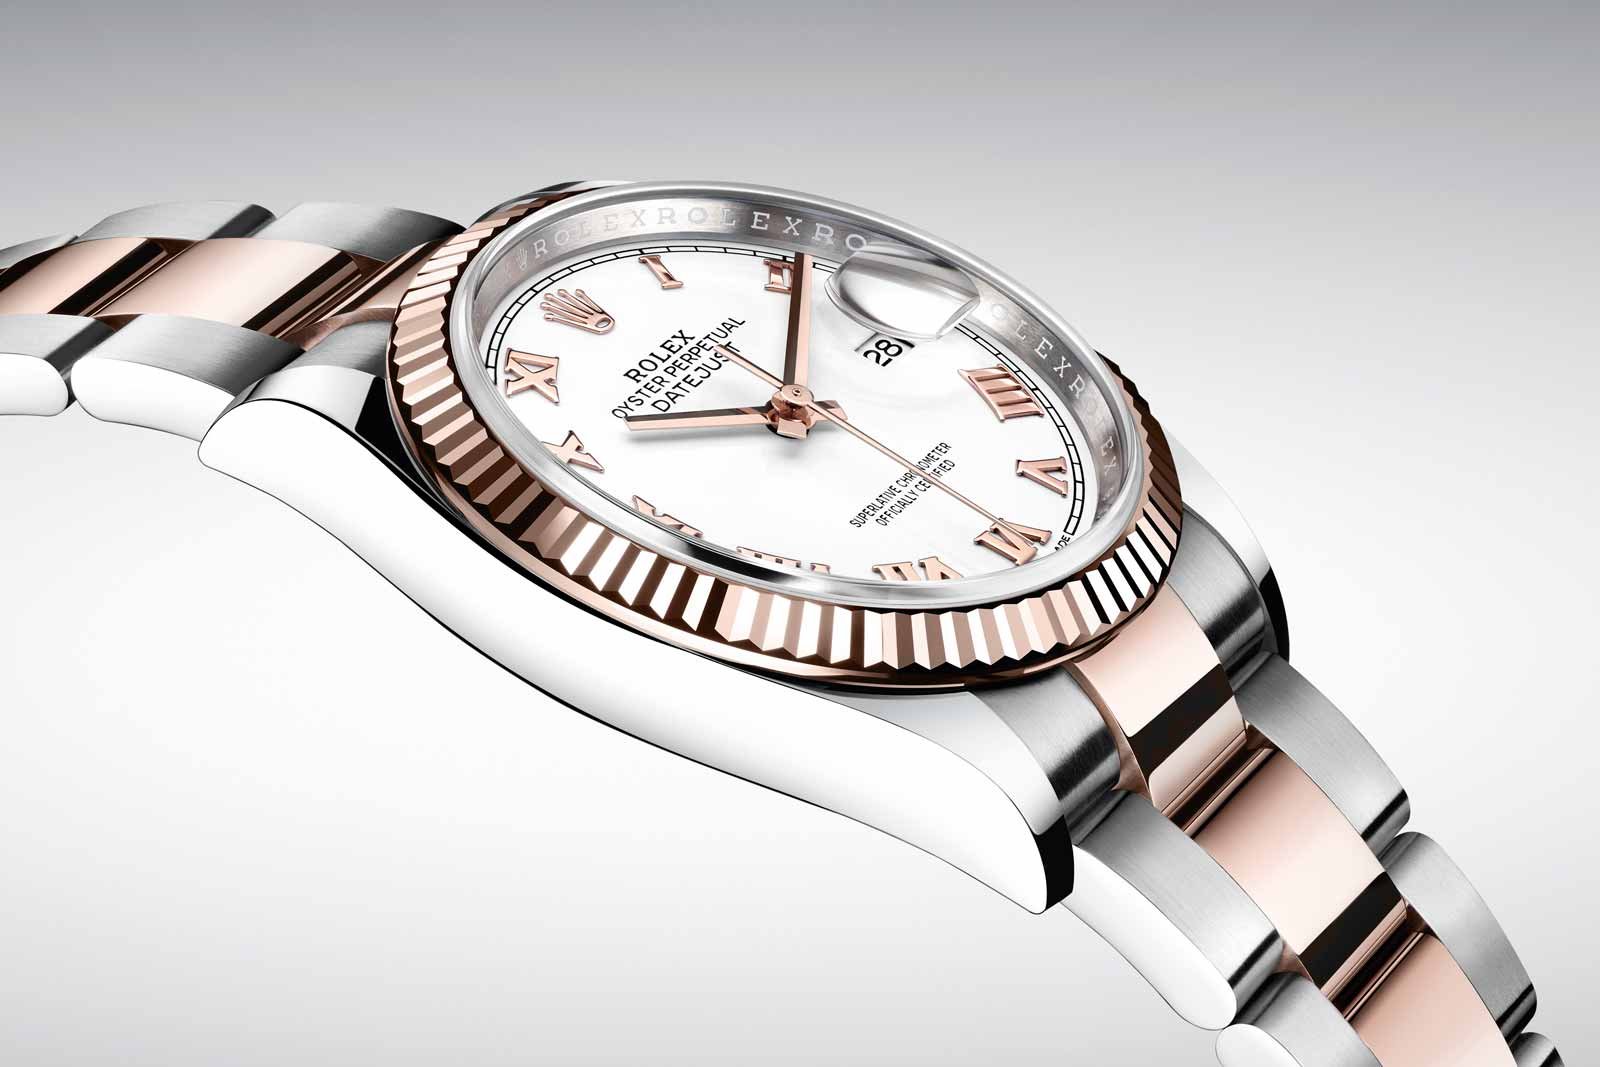 Baselworld 2018: Rolex Datejust 36